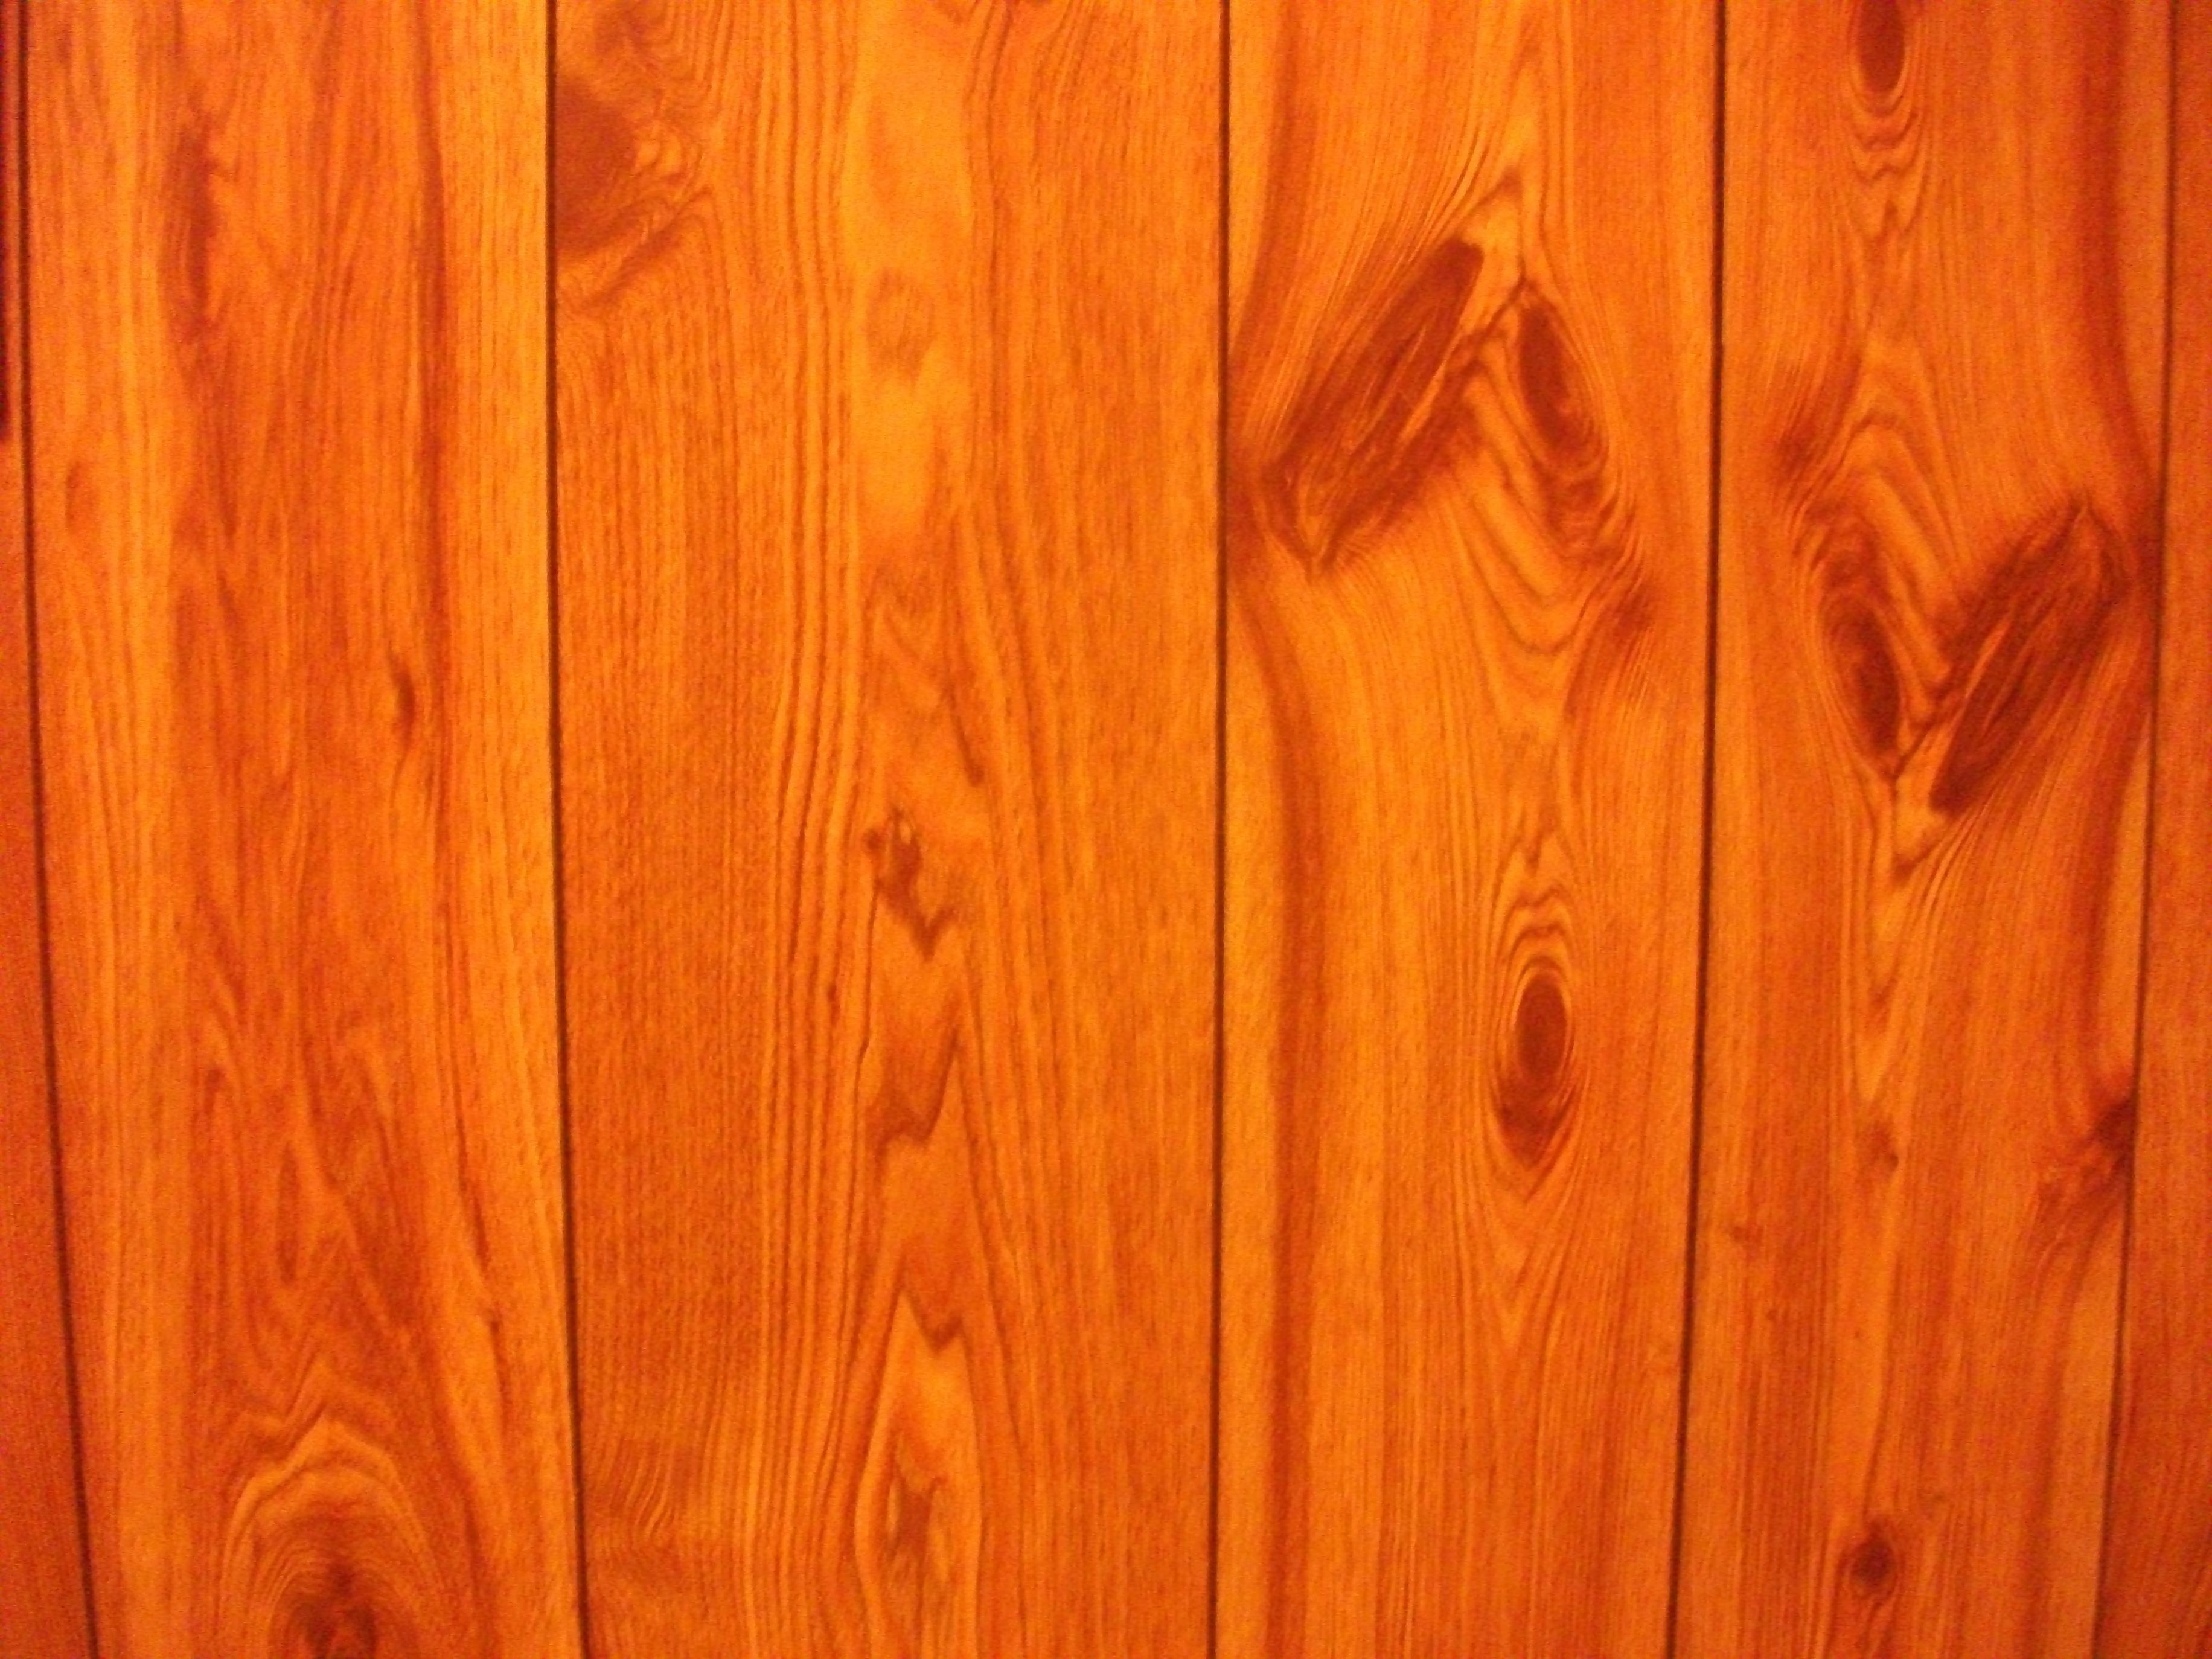 Wood Grain Desktop Wallpapers Wallpaper Cave